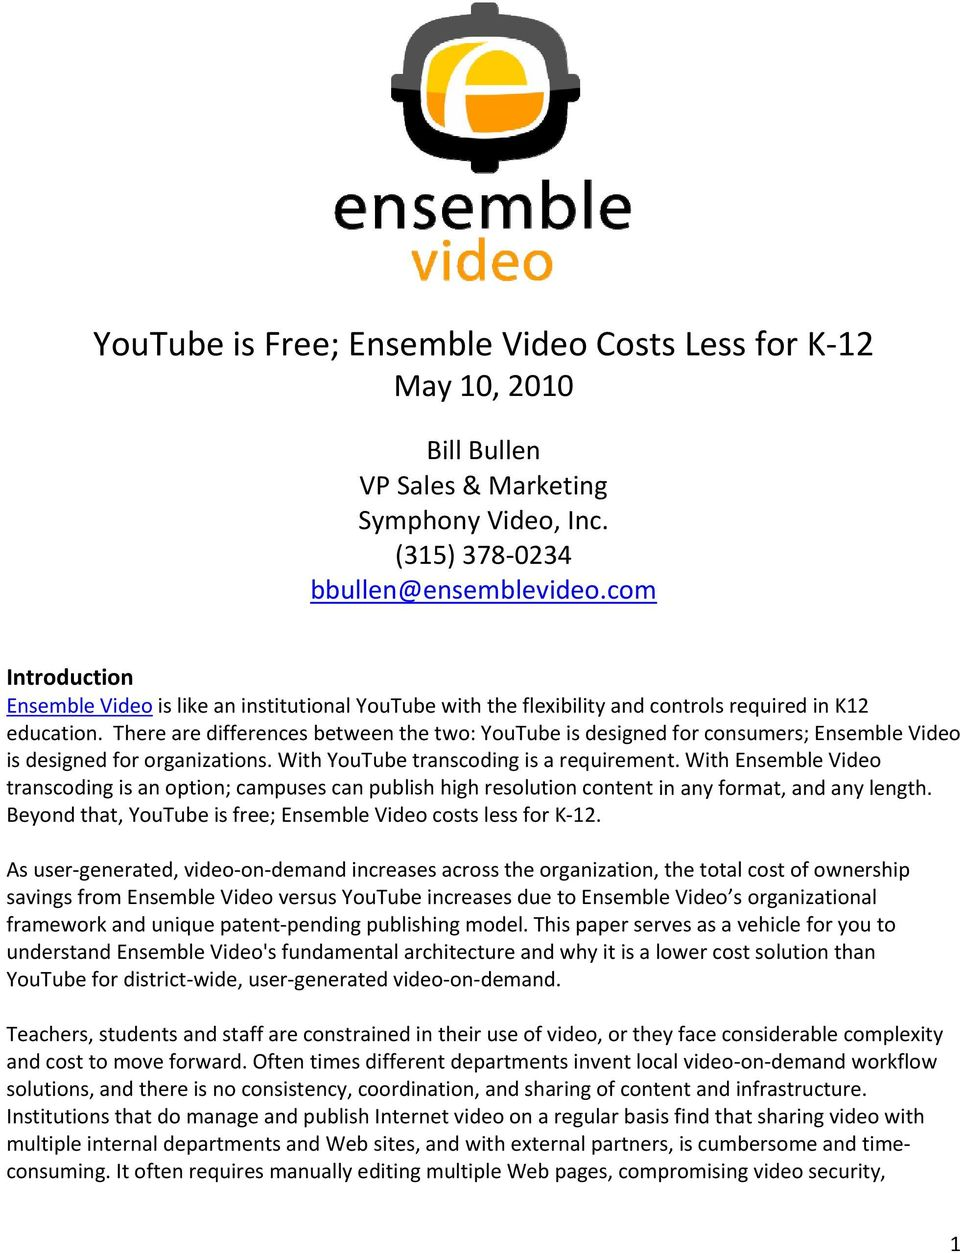 There are differences between the two: YouTube is designed for consumers; Ensemble Video is designed for organizations. With YouTube transcoding is a requirement.